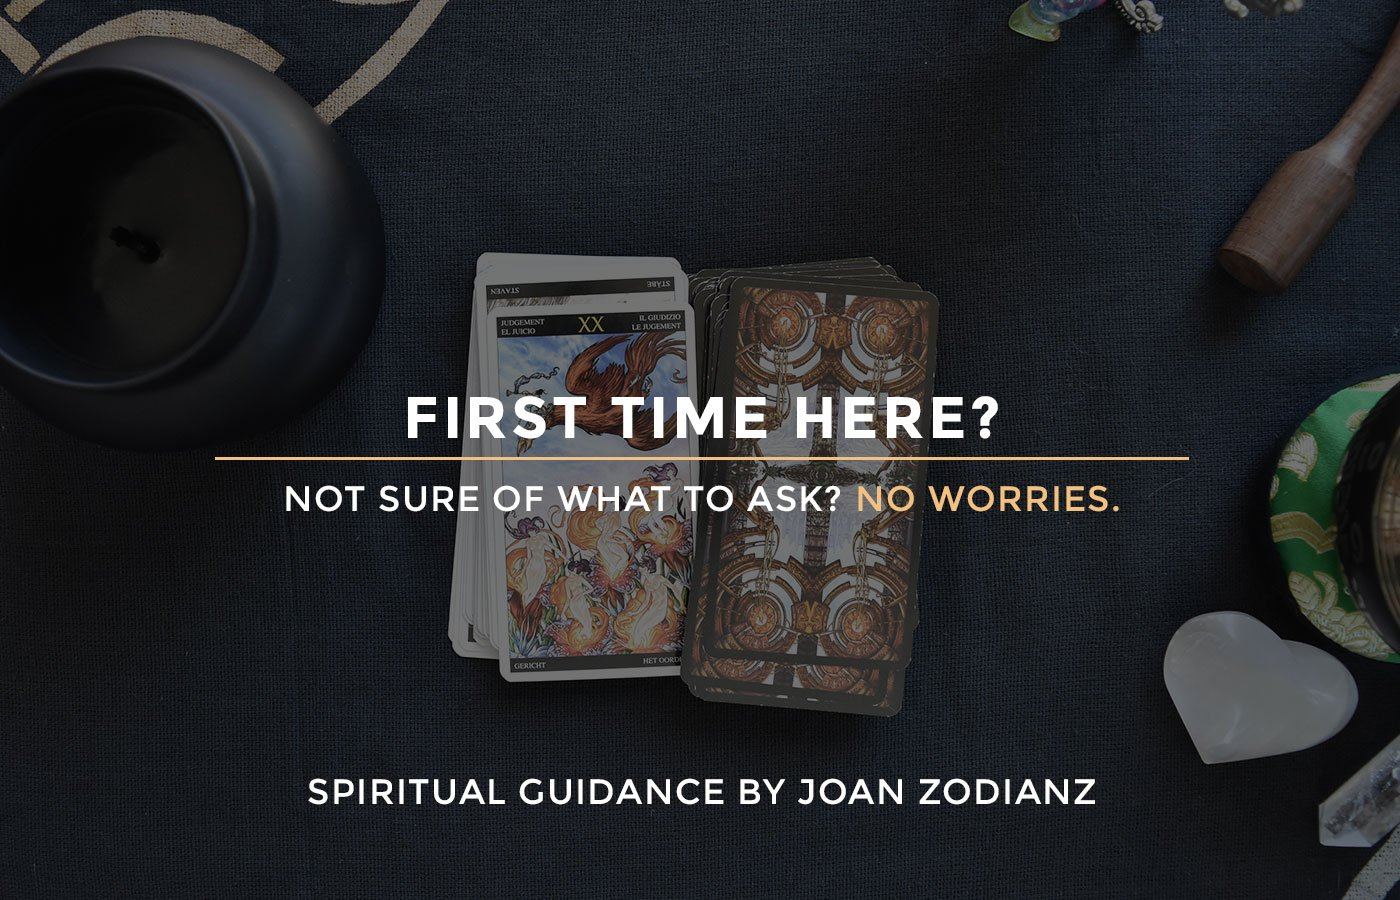 zodianz diary: Preparing for a psychic reading? Not sure what to ask? Read this.